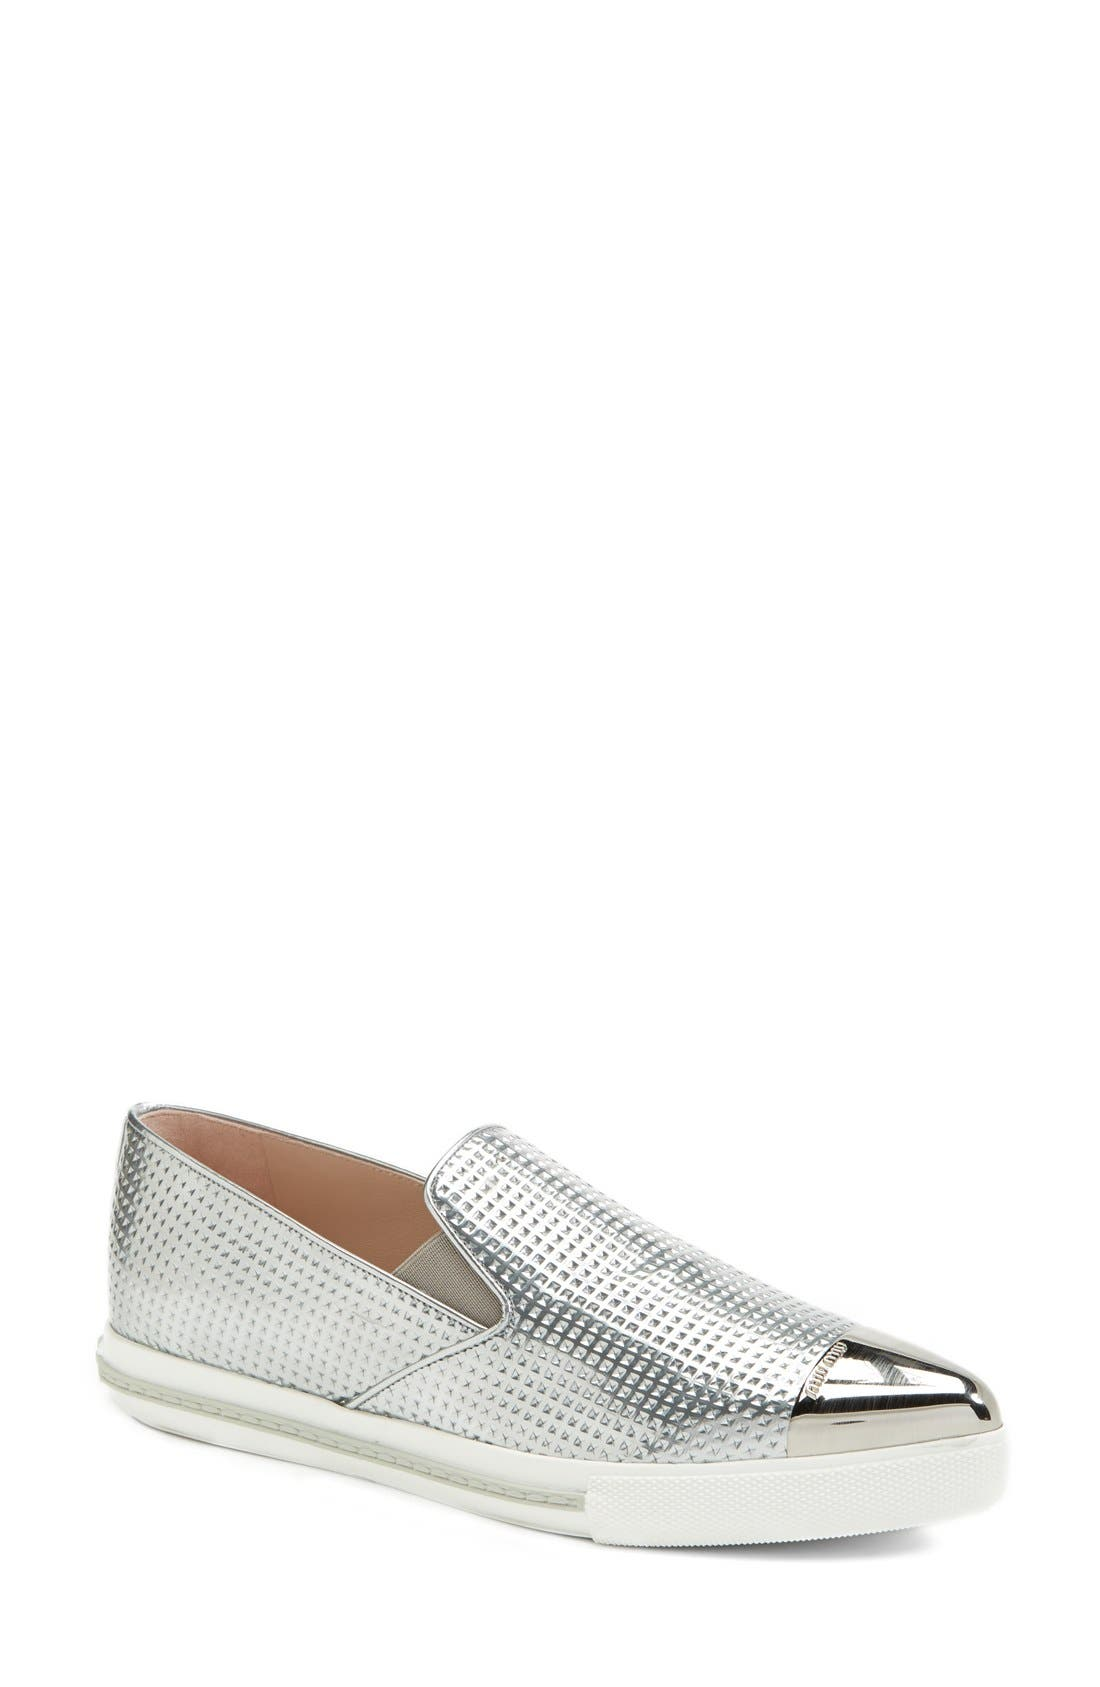 Alternate Image 1 Selected - Miu Miu Metal Sneaker (Women)